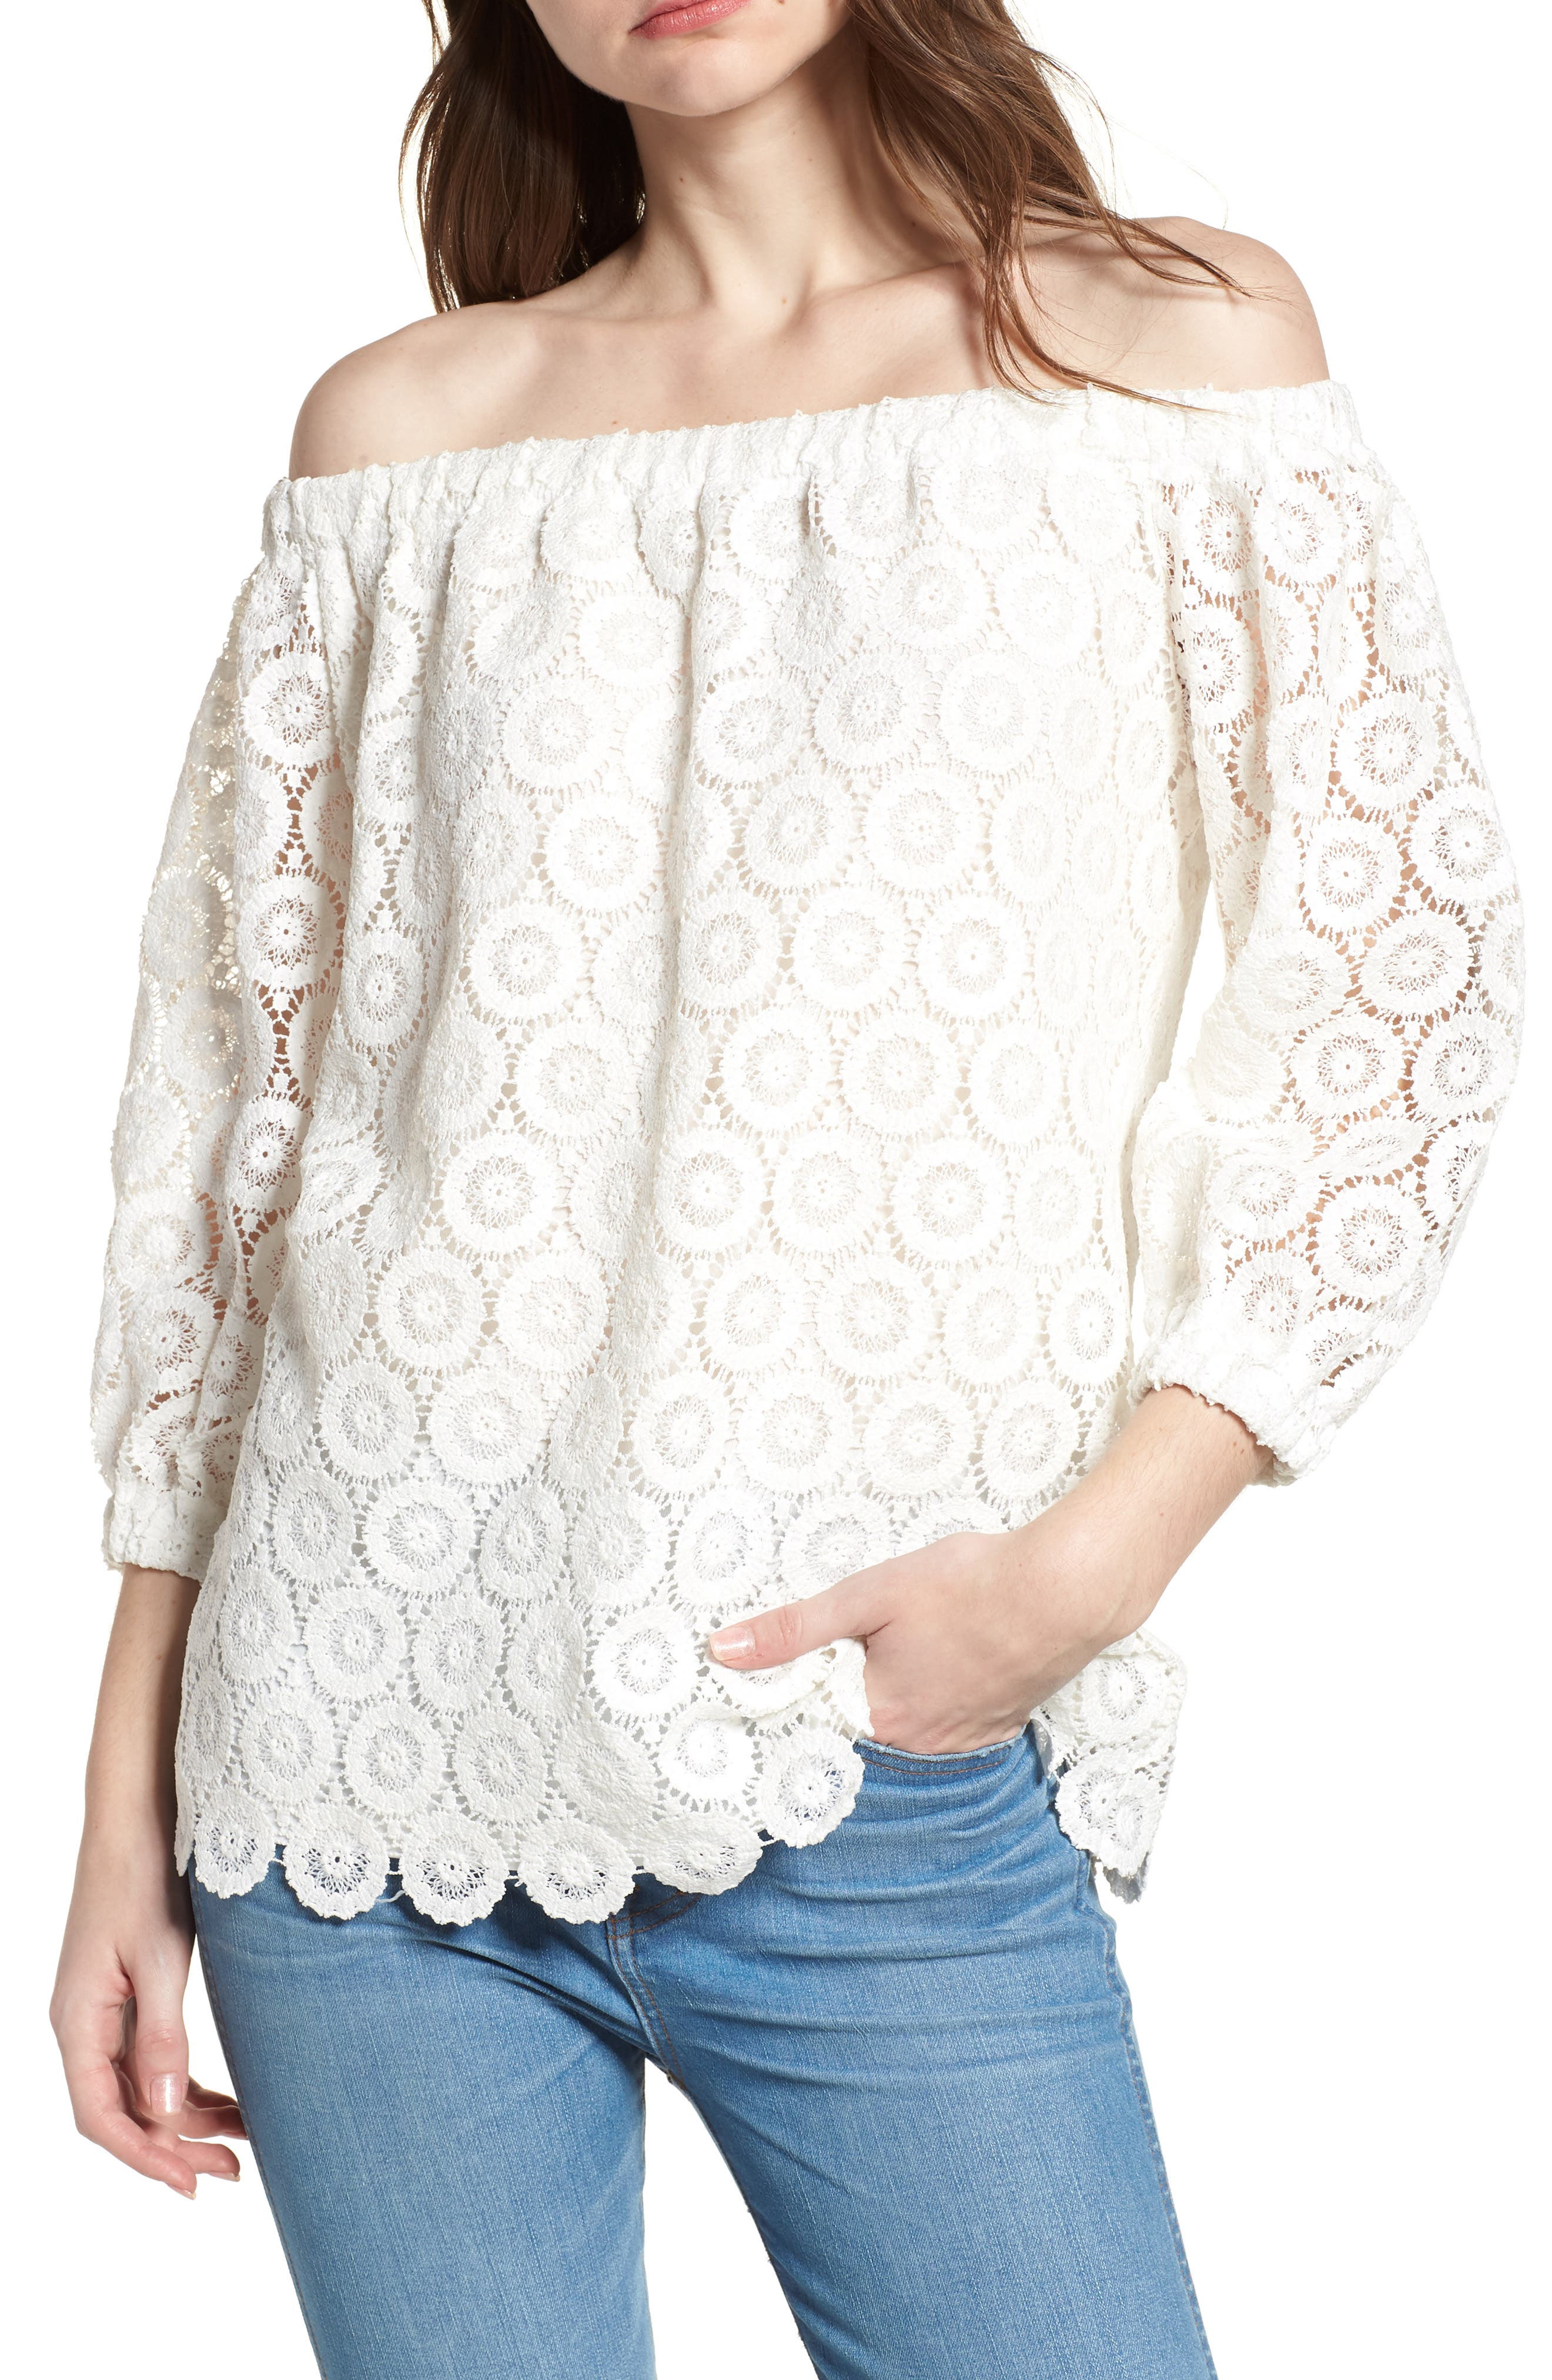 Bishop + Young Karlee Lace Off the Shoulder Top,                         Main,                         color, 100